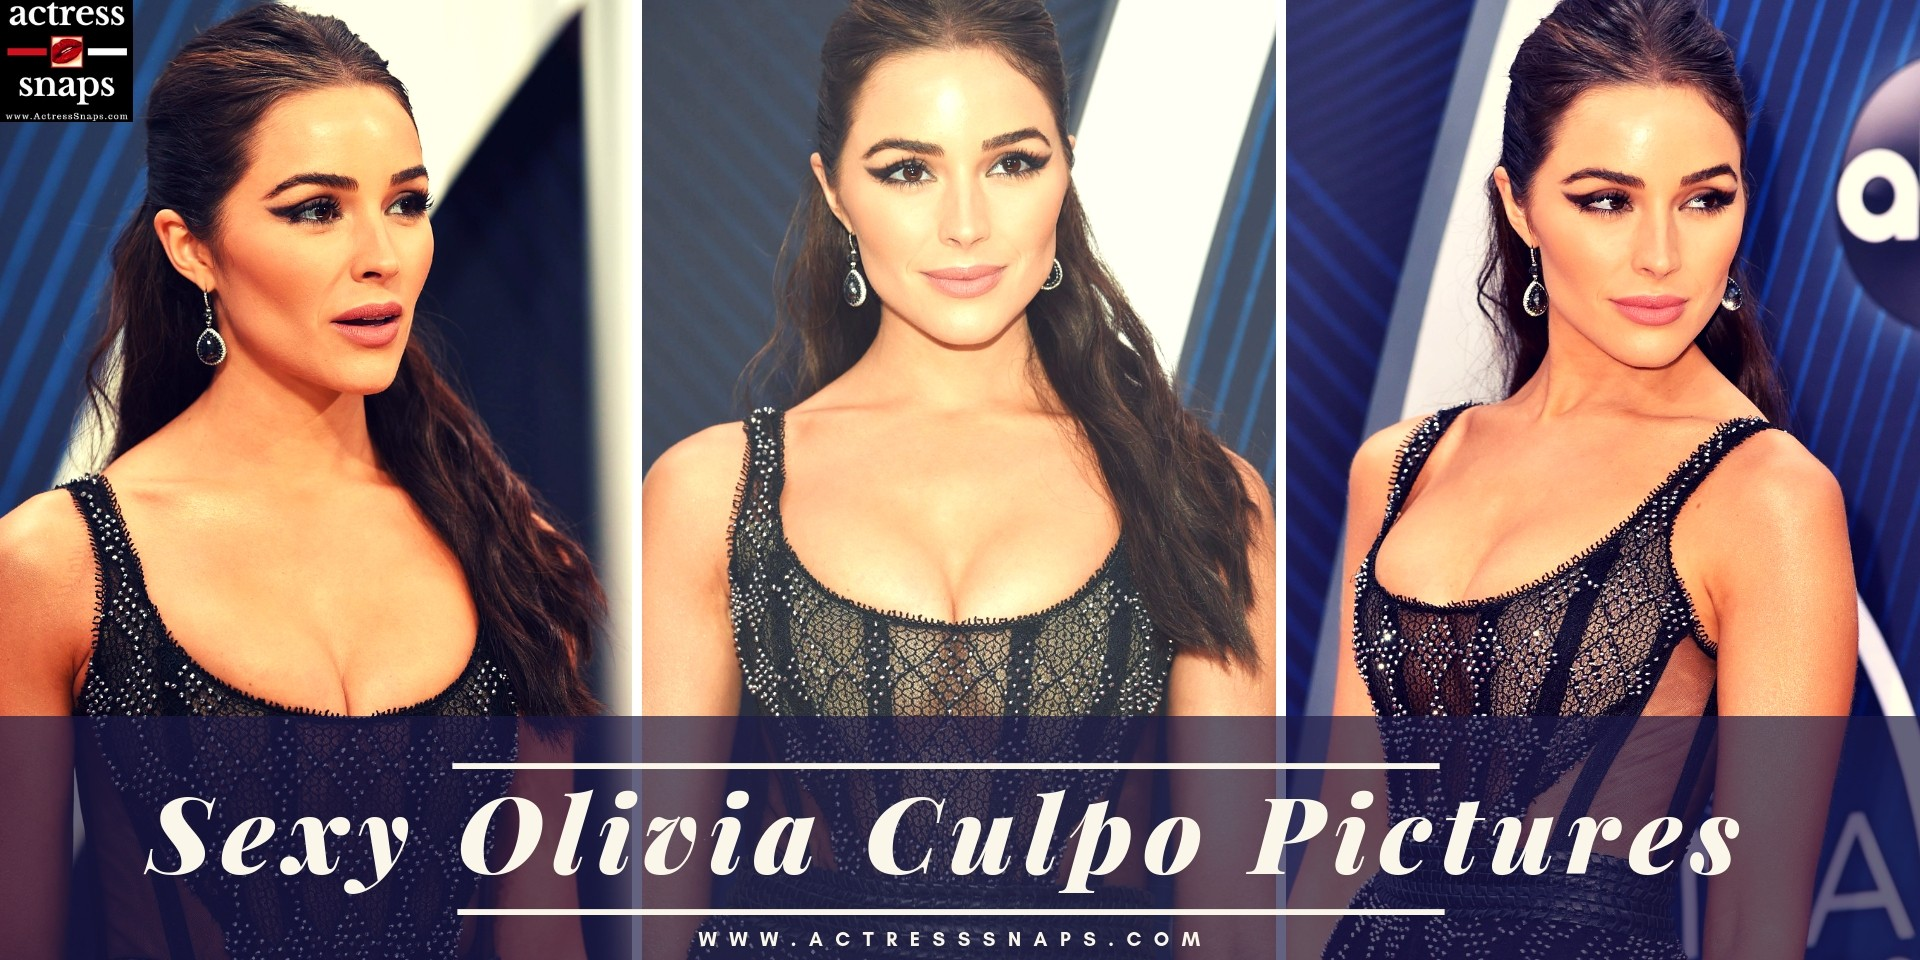 Sexy Olivia Culpo Pictures from her attending the Latest CMA Awards Night